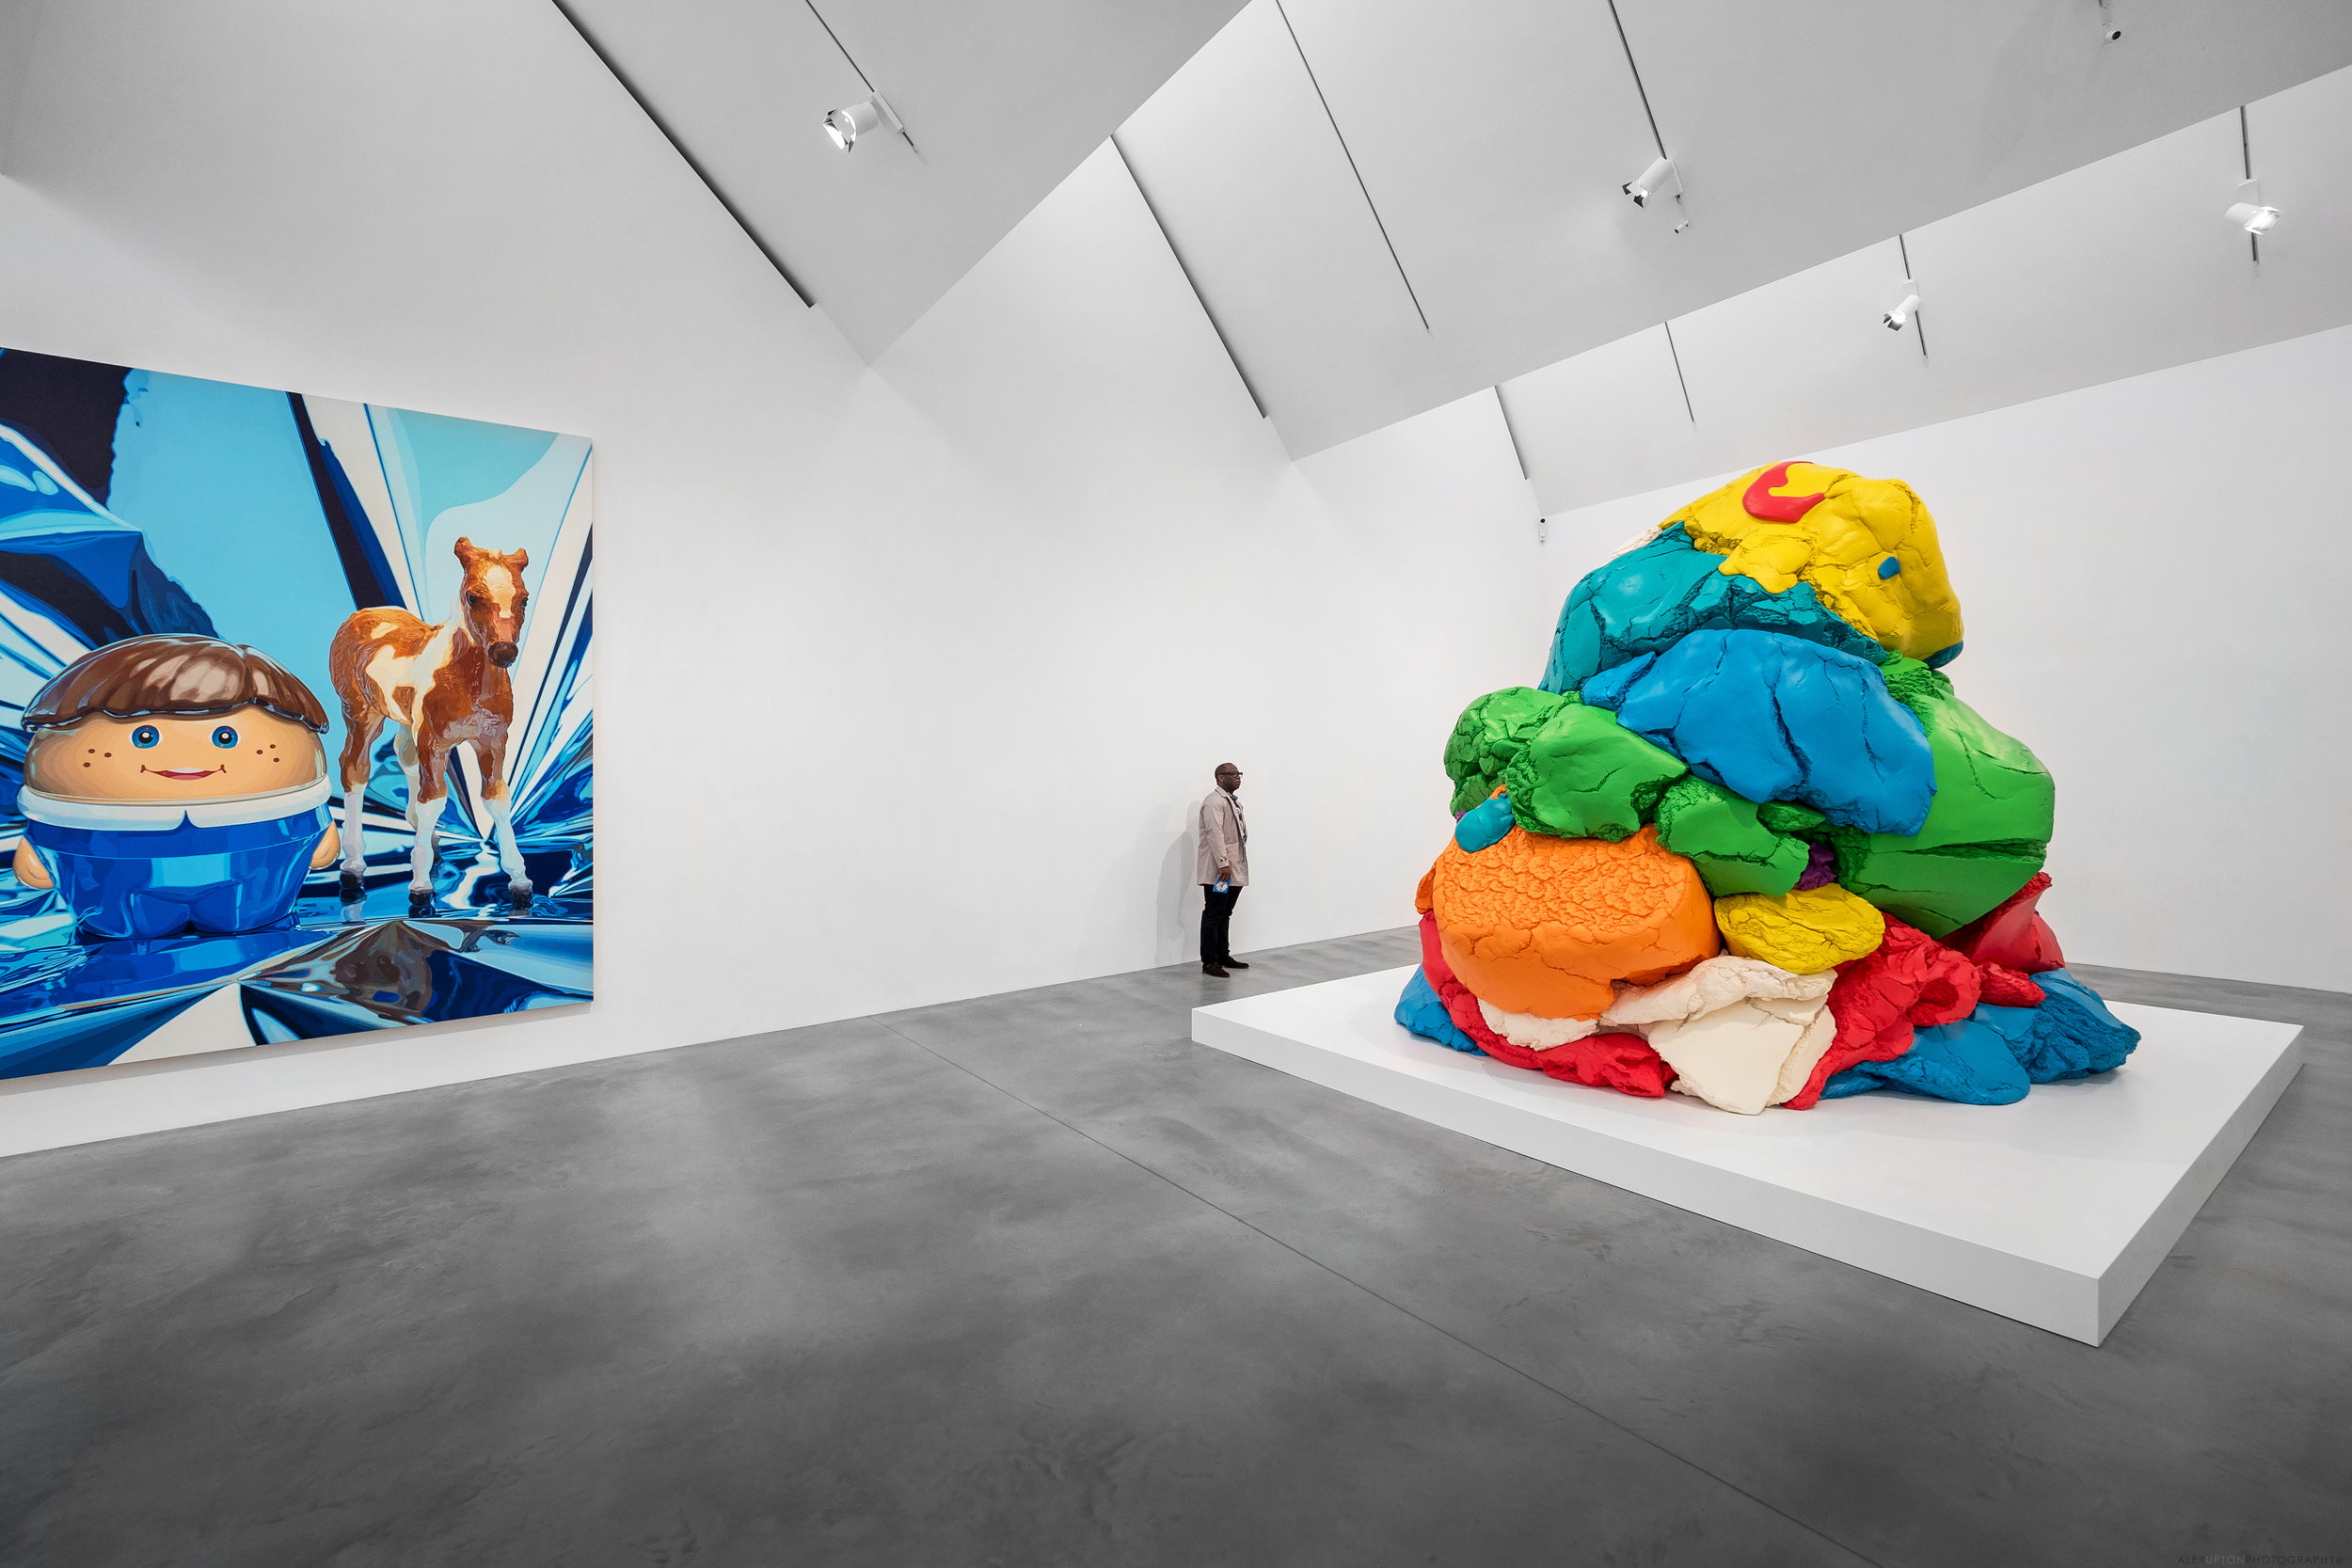 Interior Photography of Newport Street Gallery Exhibition Space - Artwork by Jeff Koons.